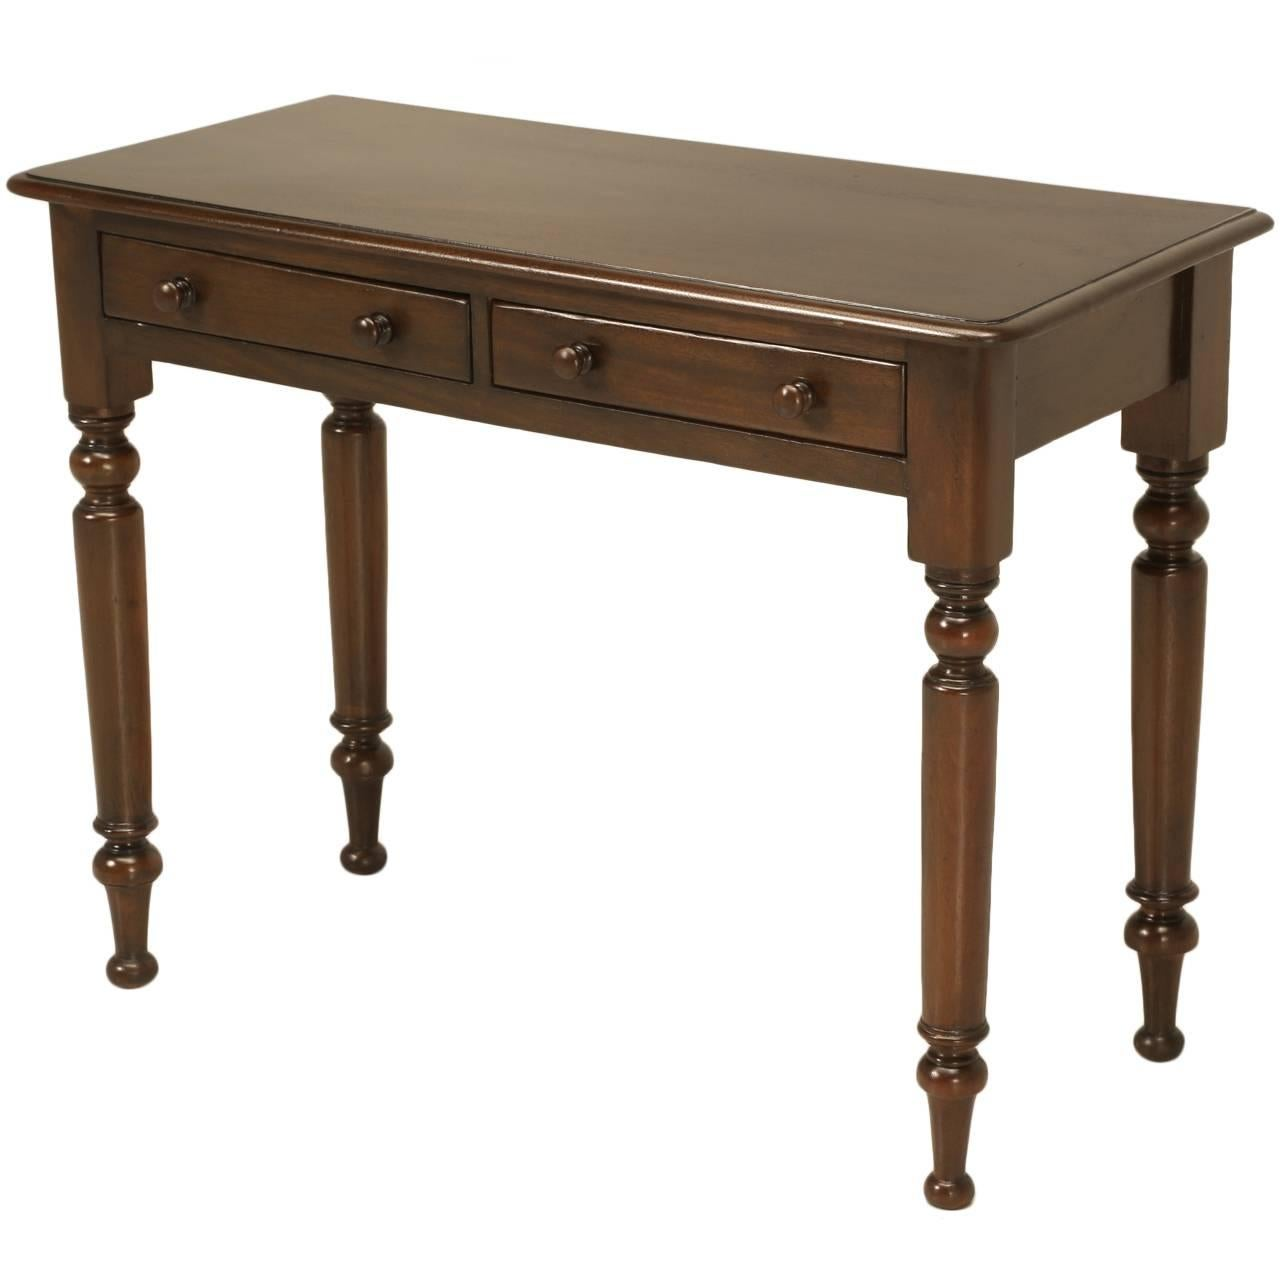 French Console or Writing Table, circa 1800s